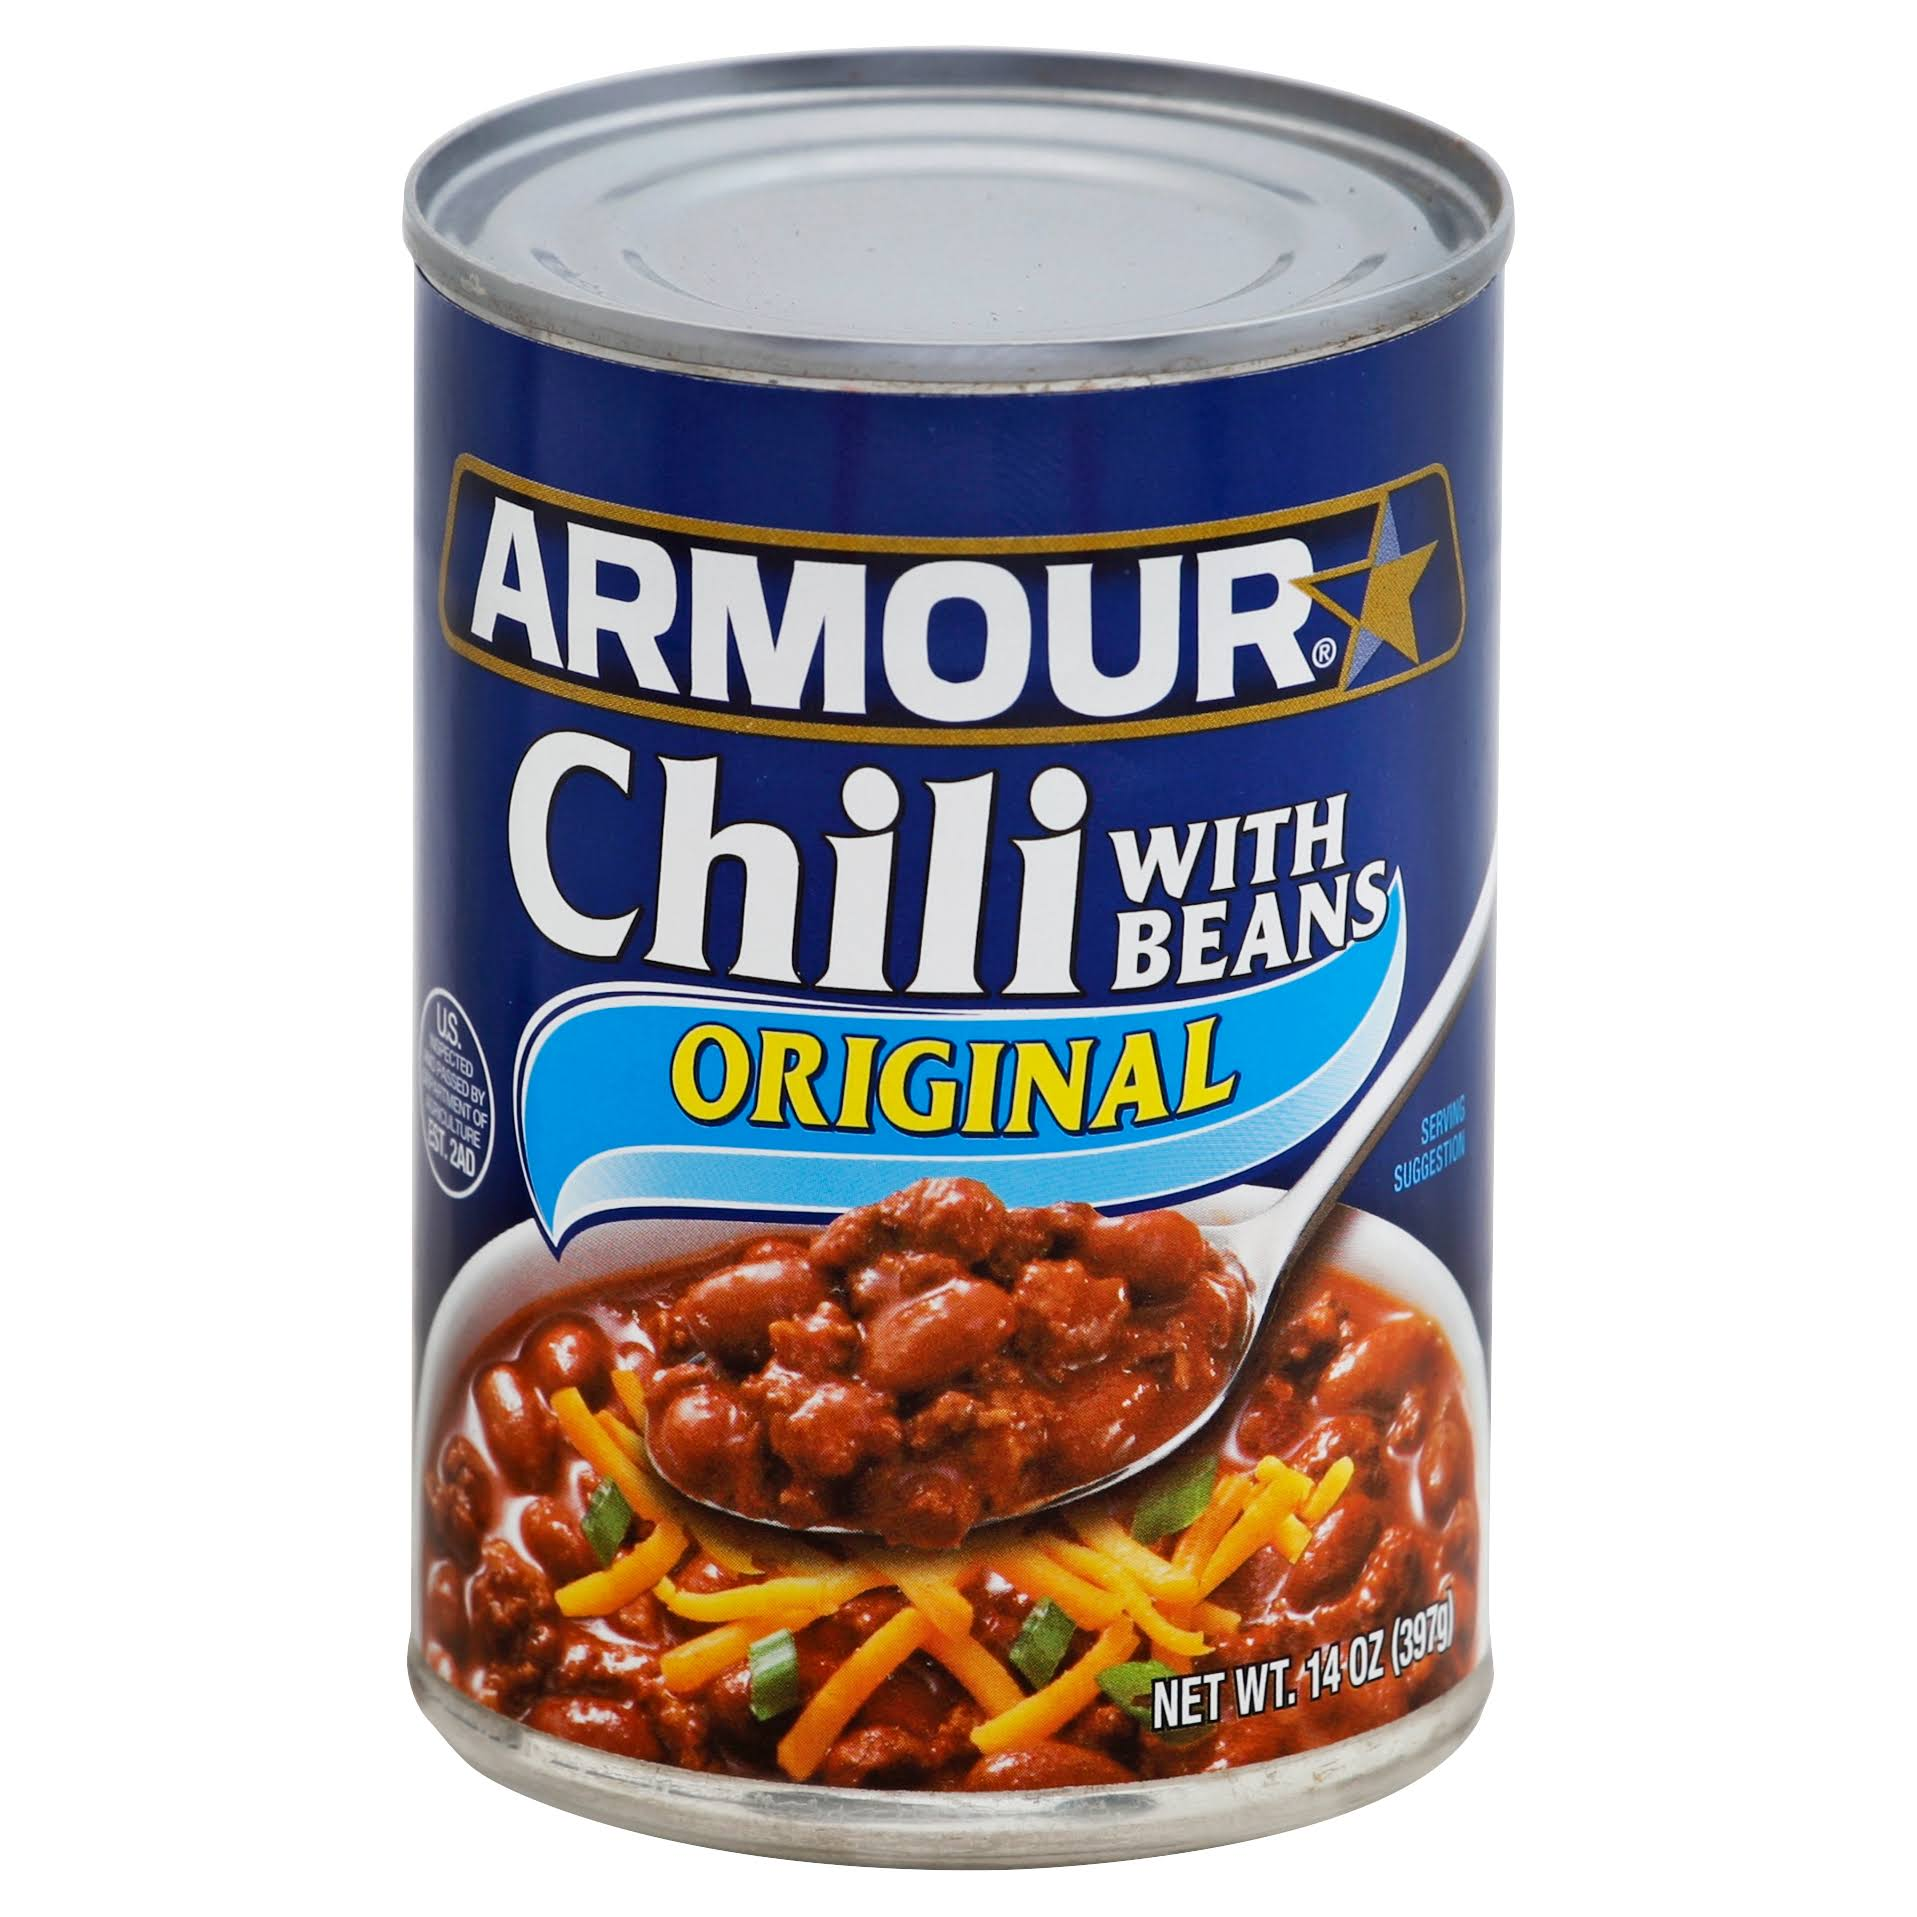 Armour Original Chili - With Beans, 14oz, 12 per Case